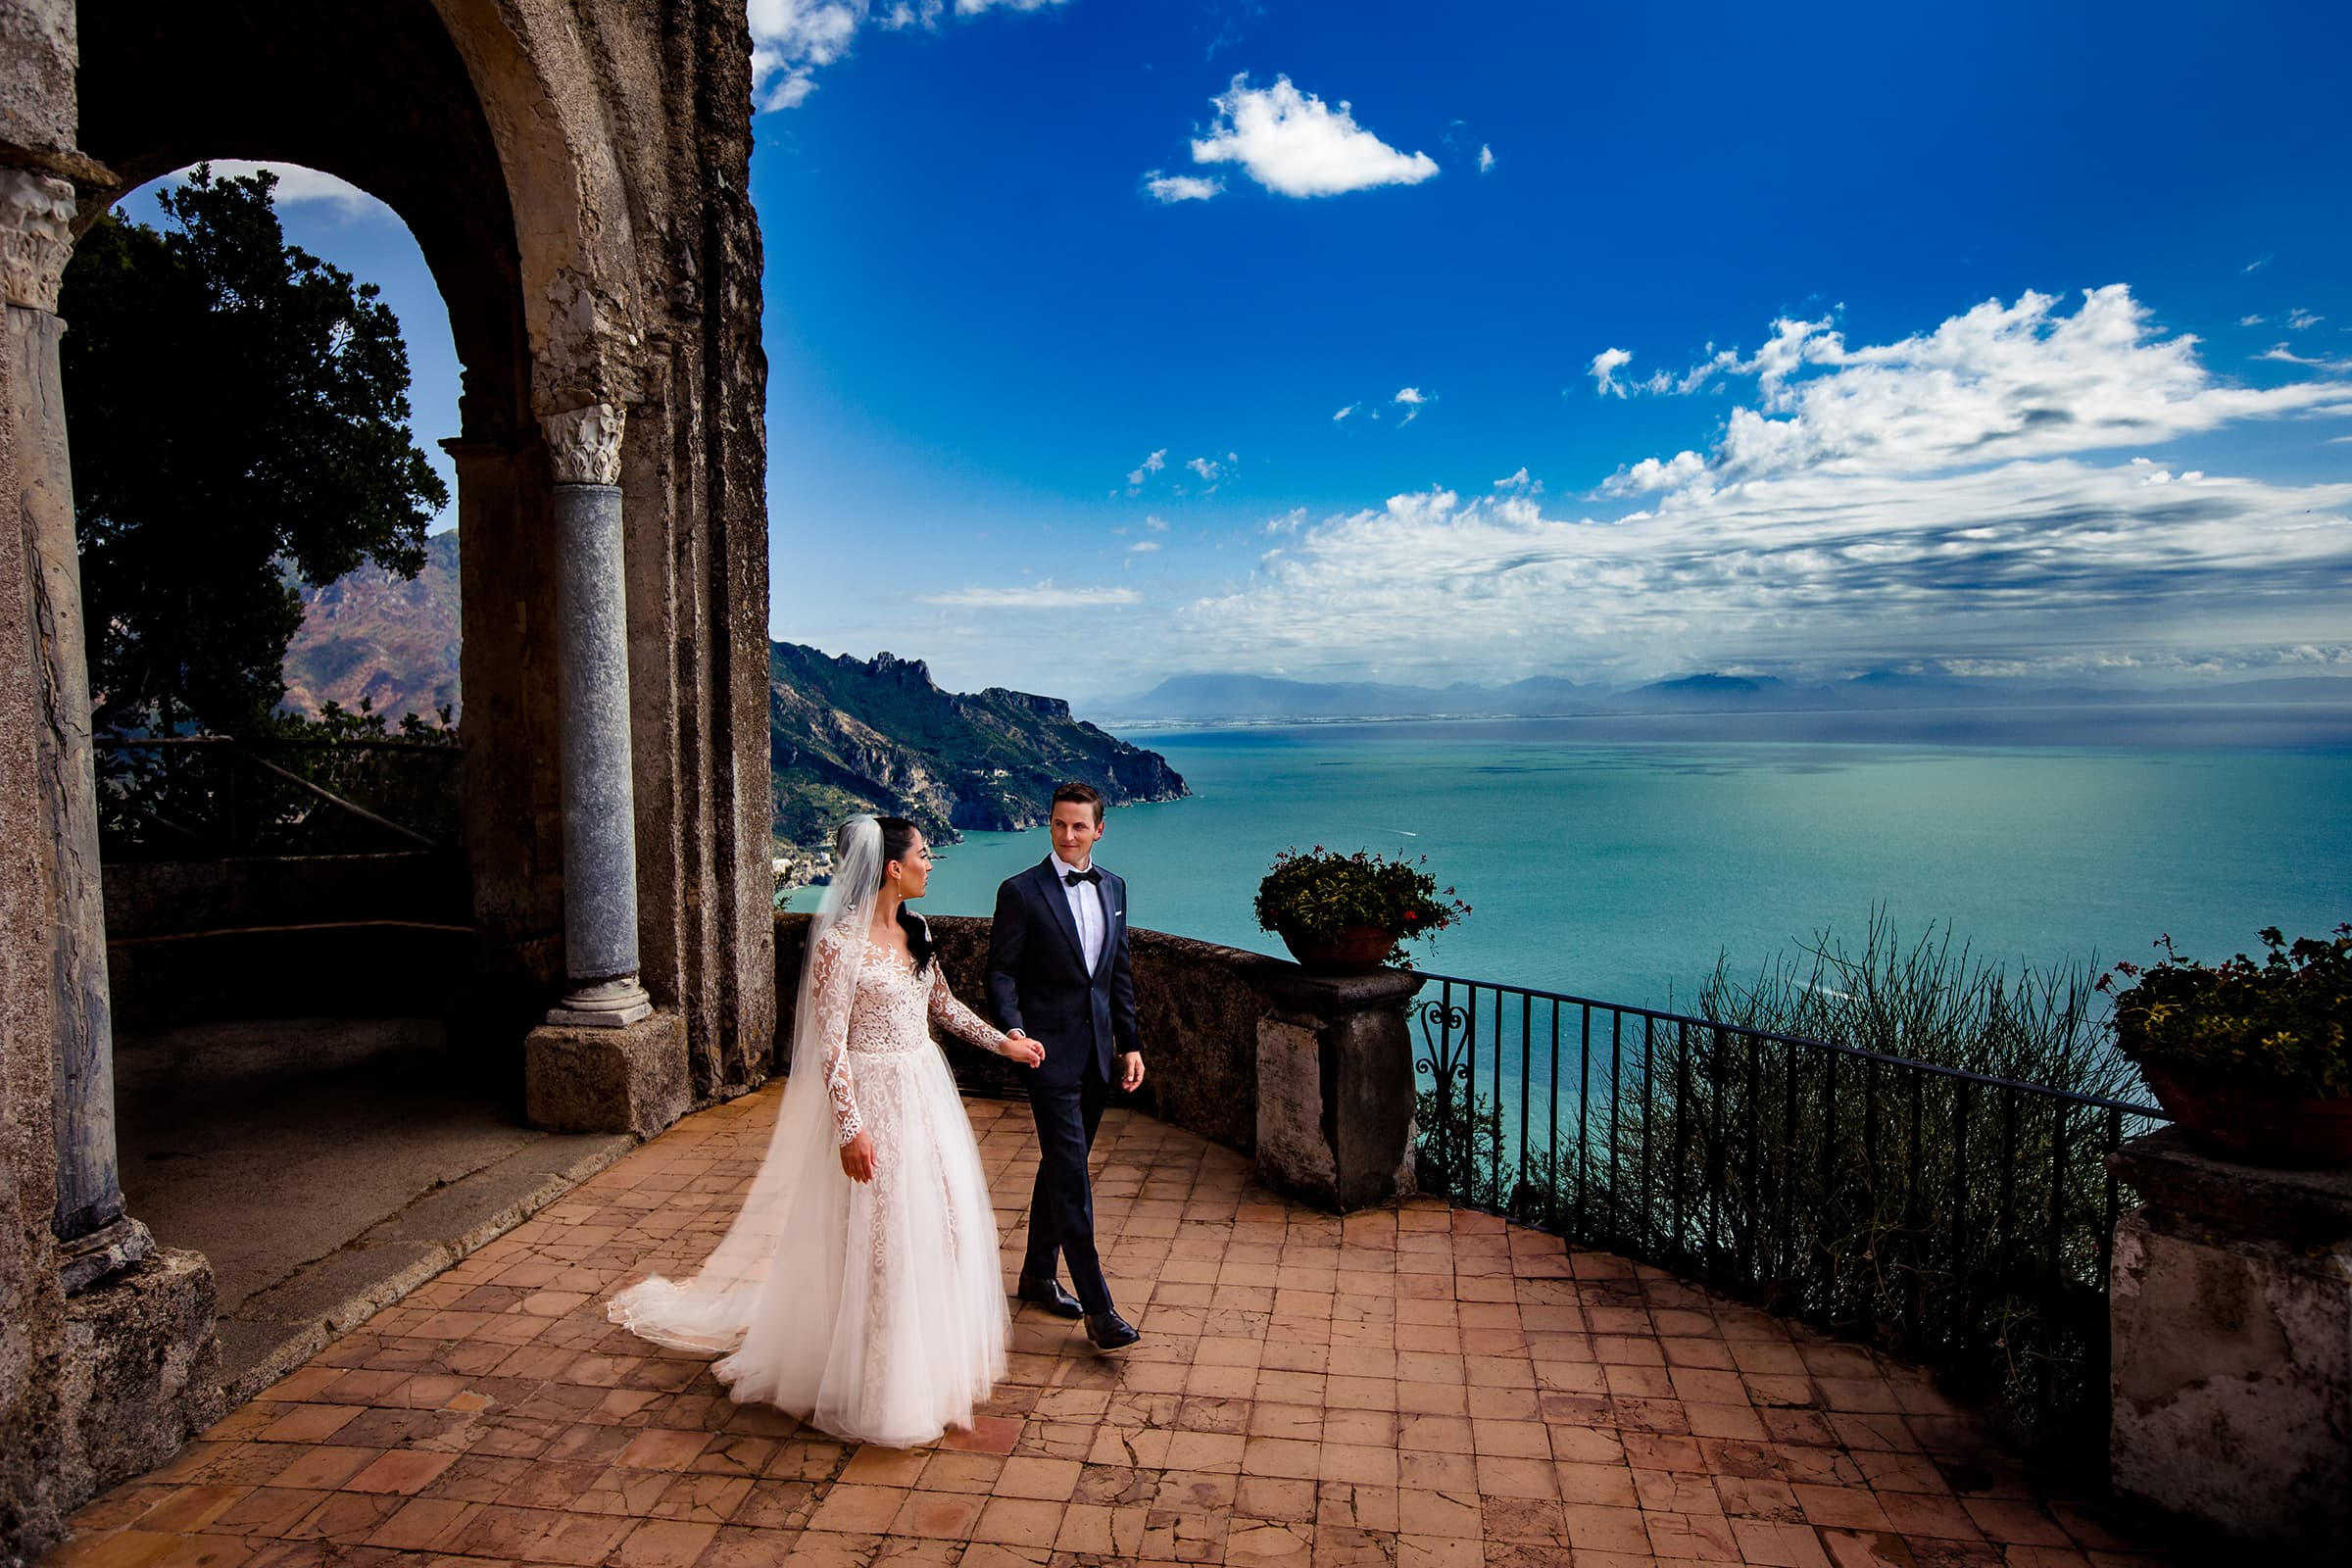 bride and groom walking on the terrace at Villa Cimbrone moments after their Ravello elopement on the Amalfi Coast in Italy